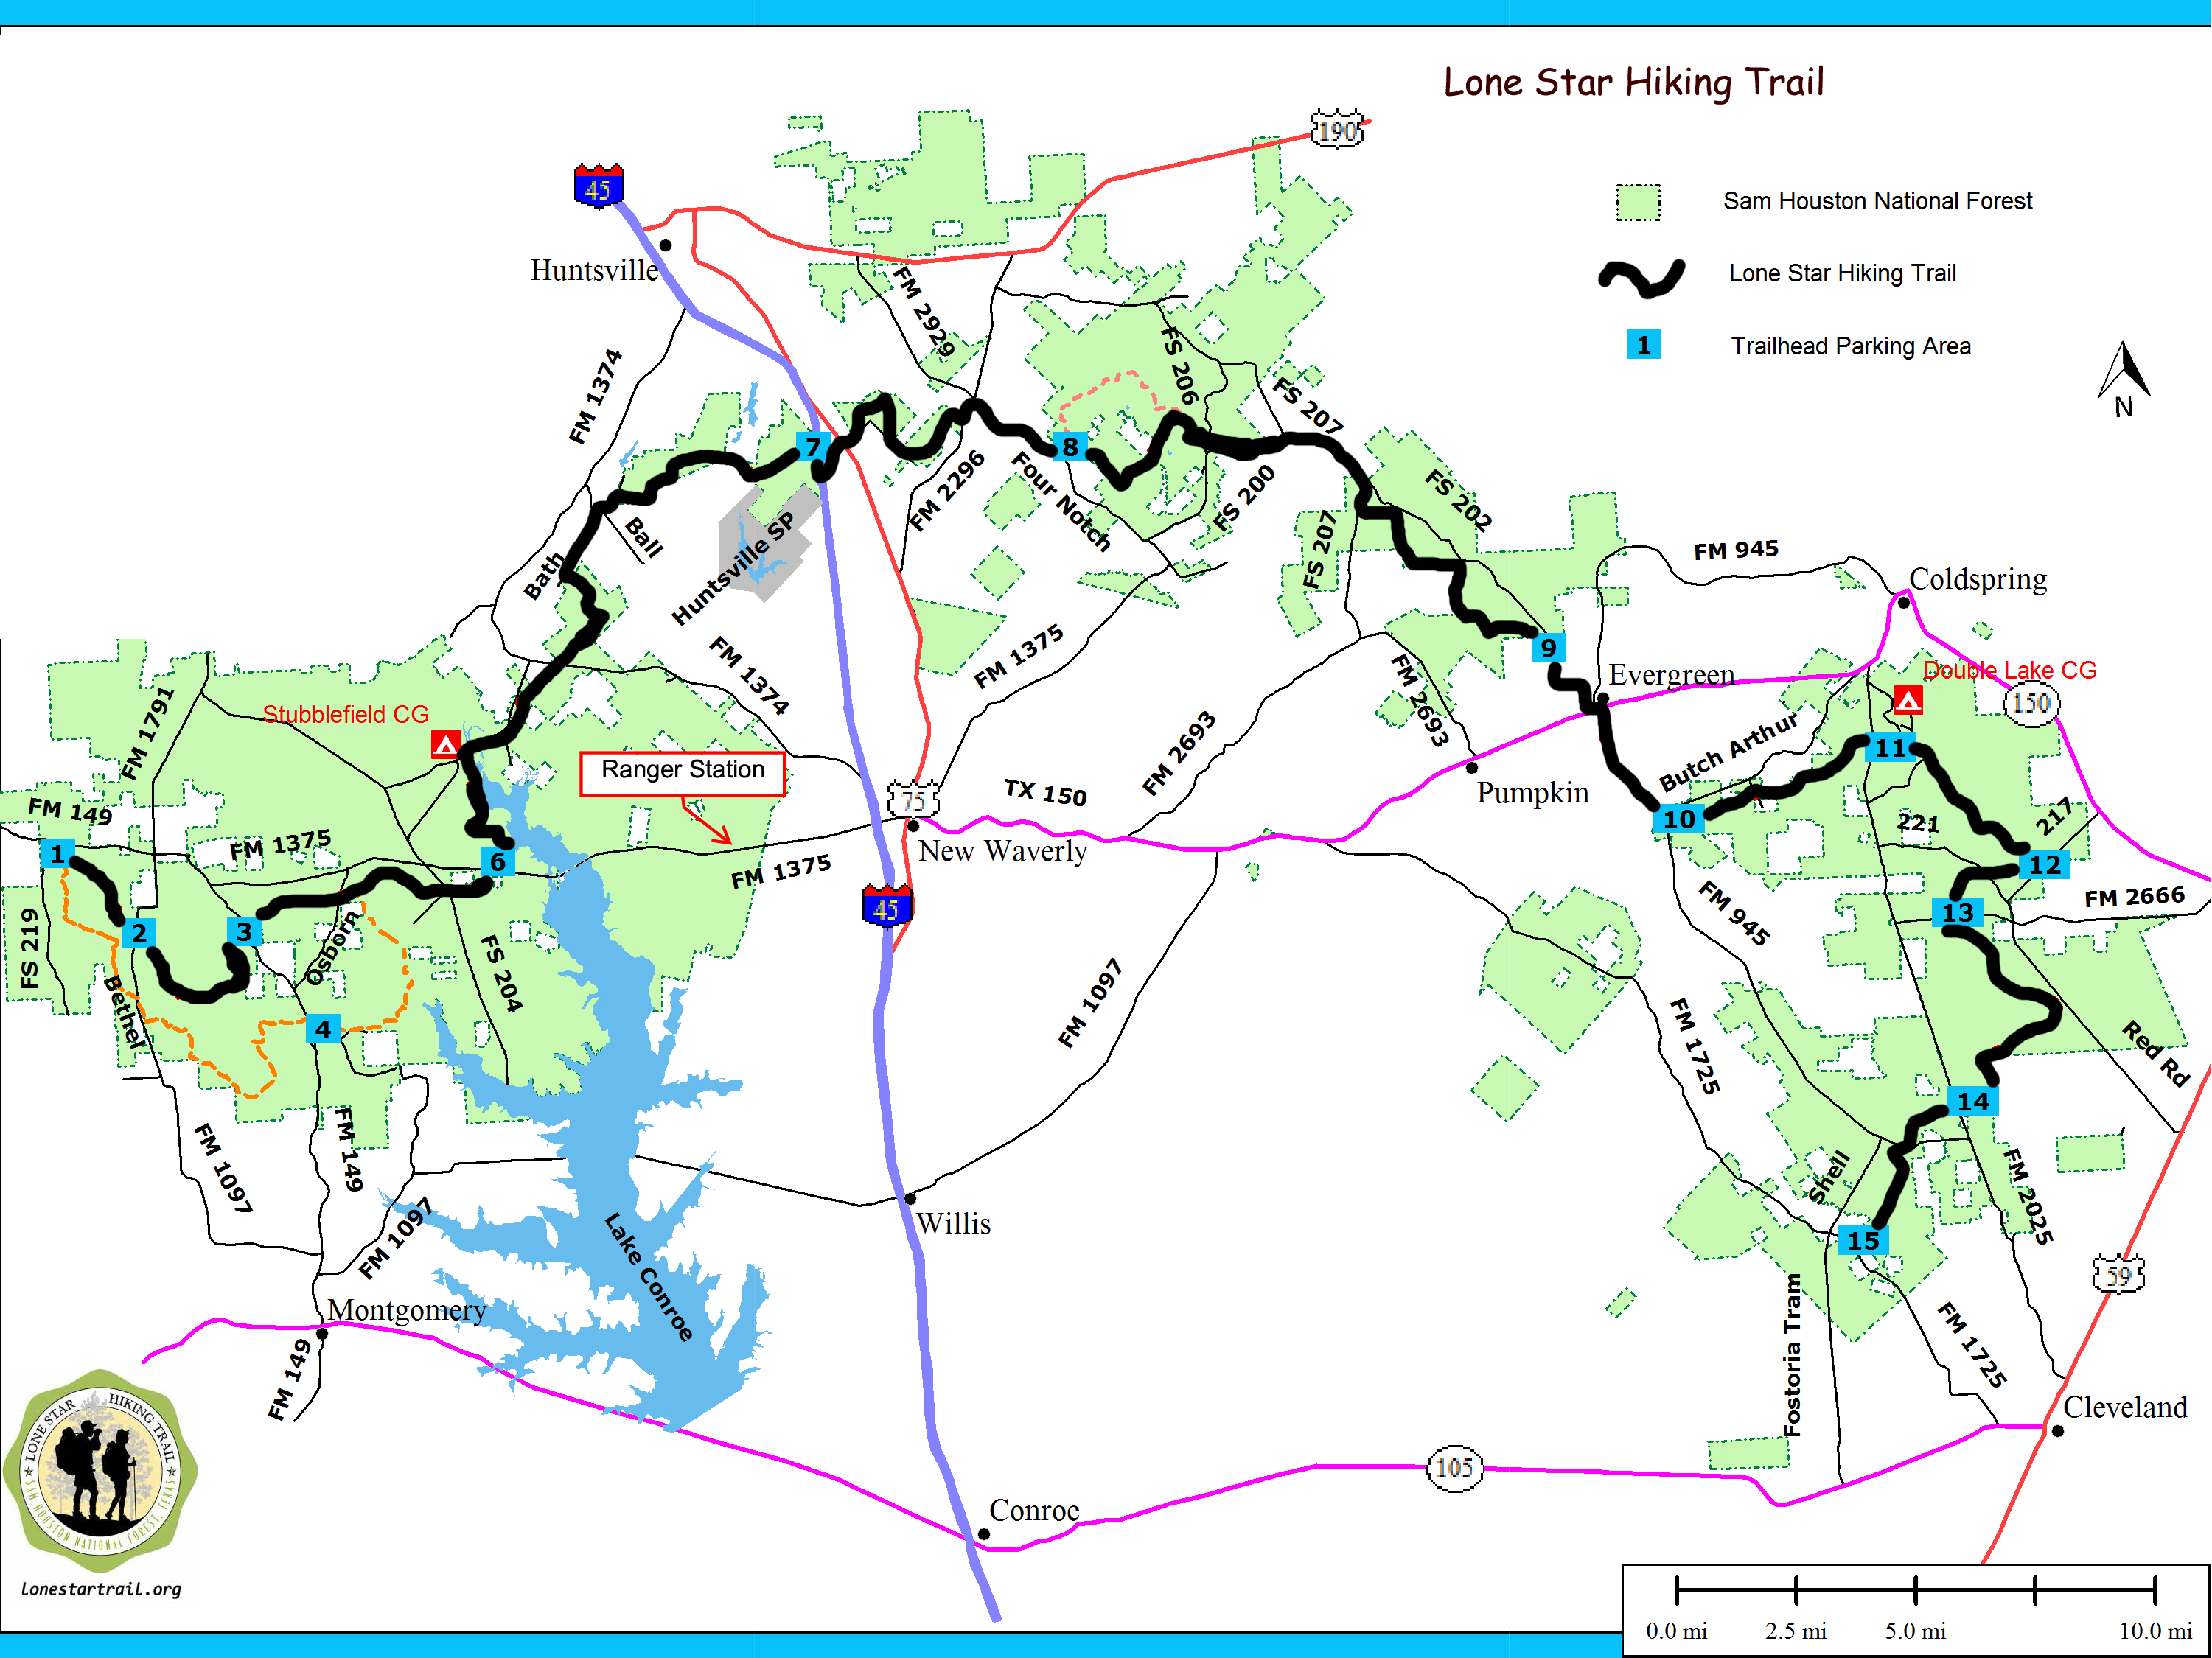 Pincathy Foreman On Outdoor Adventures | Hiking Trail Maps - Texas Trails Maps